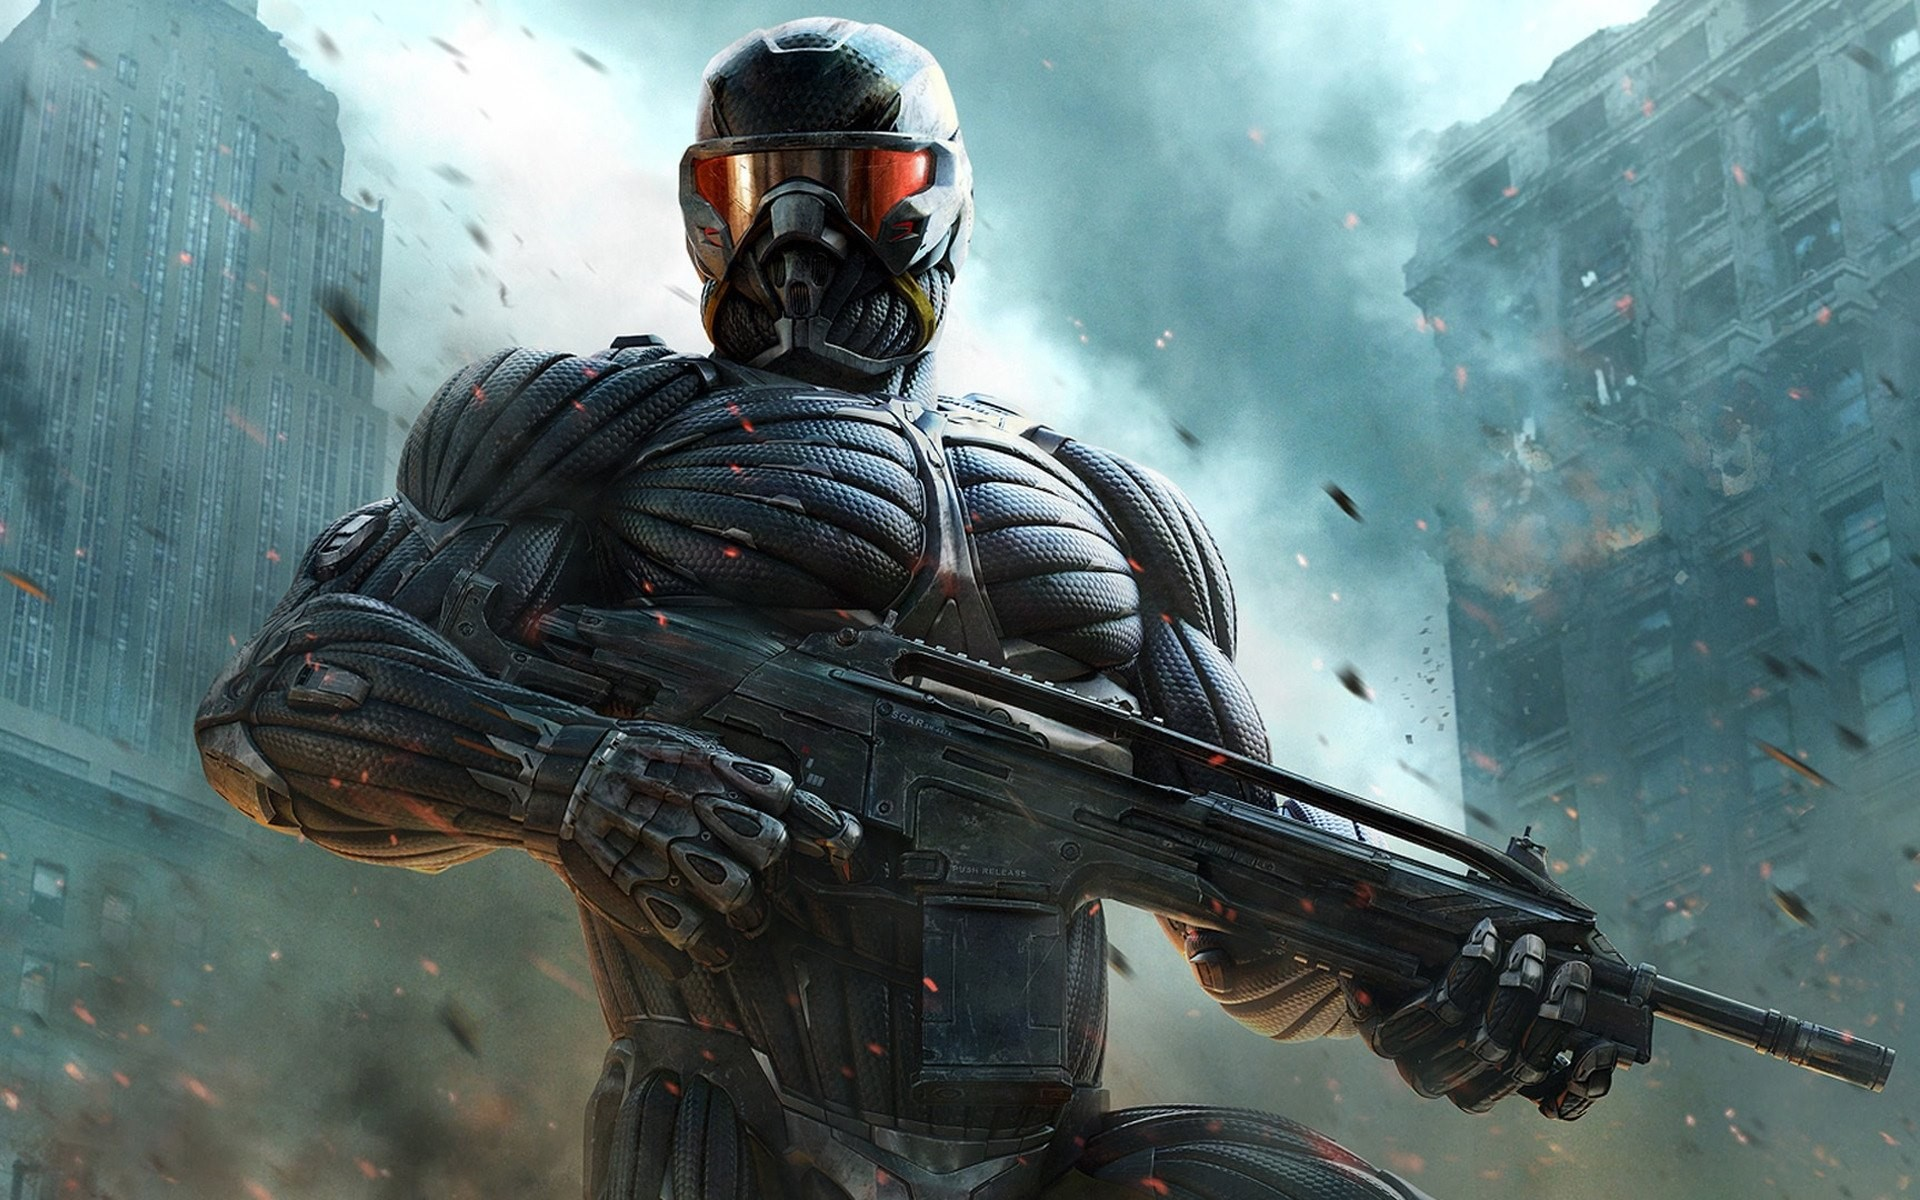 1920x1200 And the last wallpaper from Crysis game is listed below in HD and wide  sizes for any modern phone, tablet and desktop screen